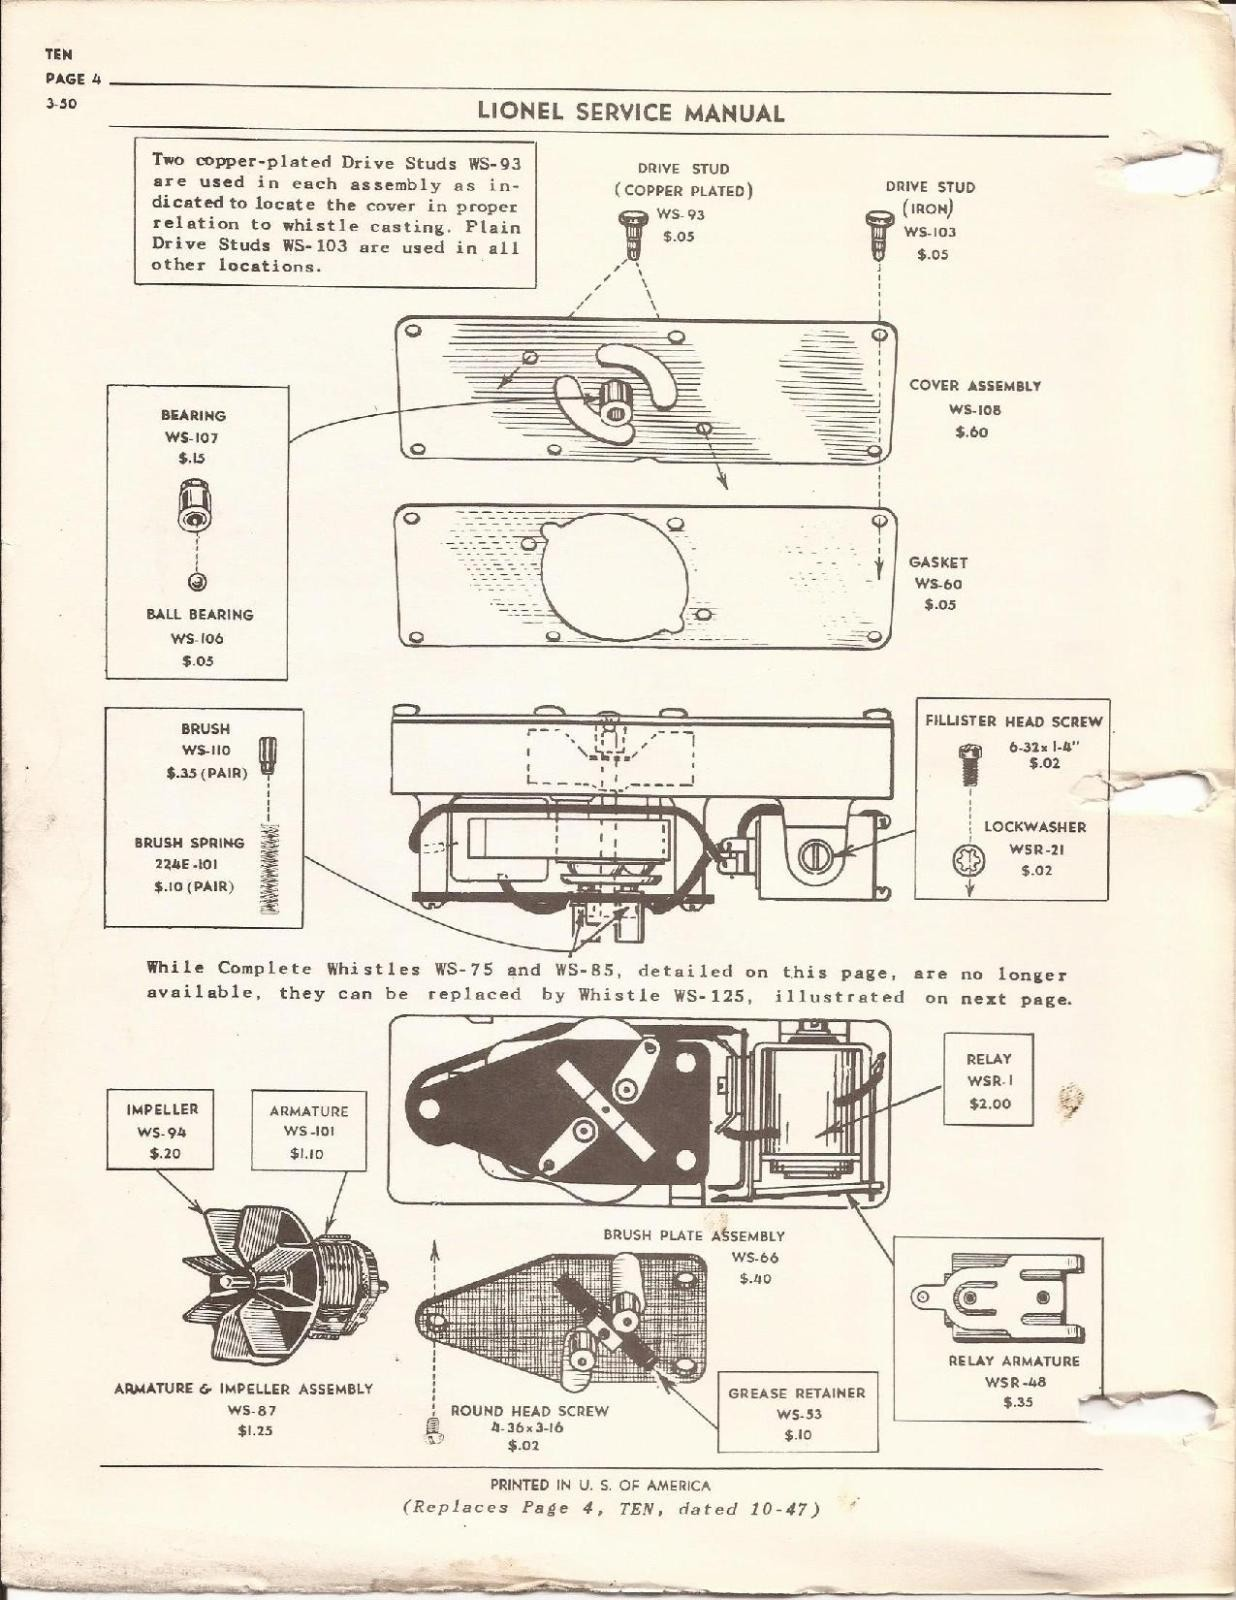 Lionel Whistle Tender Wiring Diagram Awesome